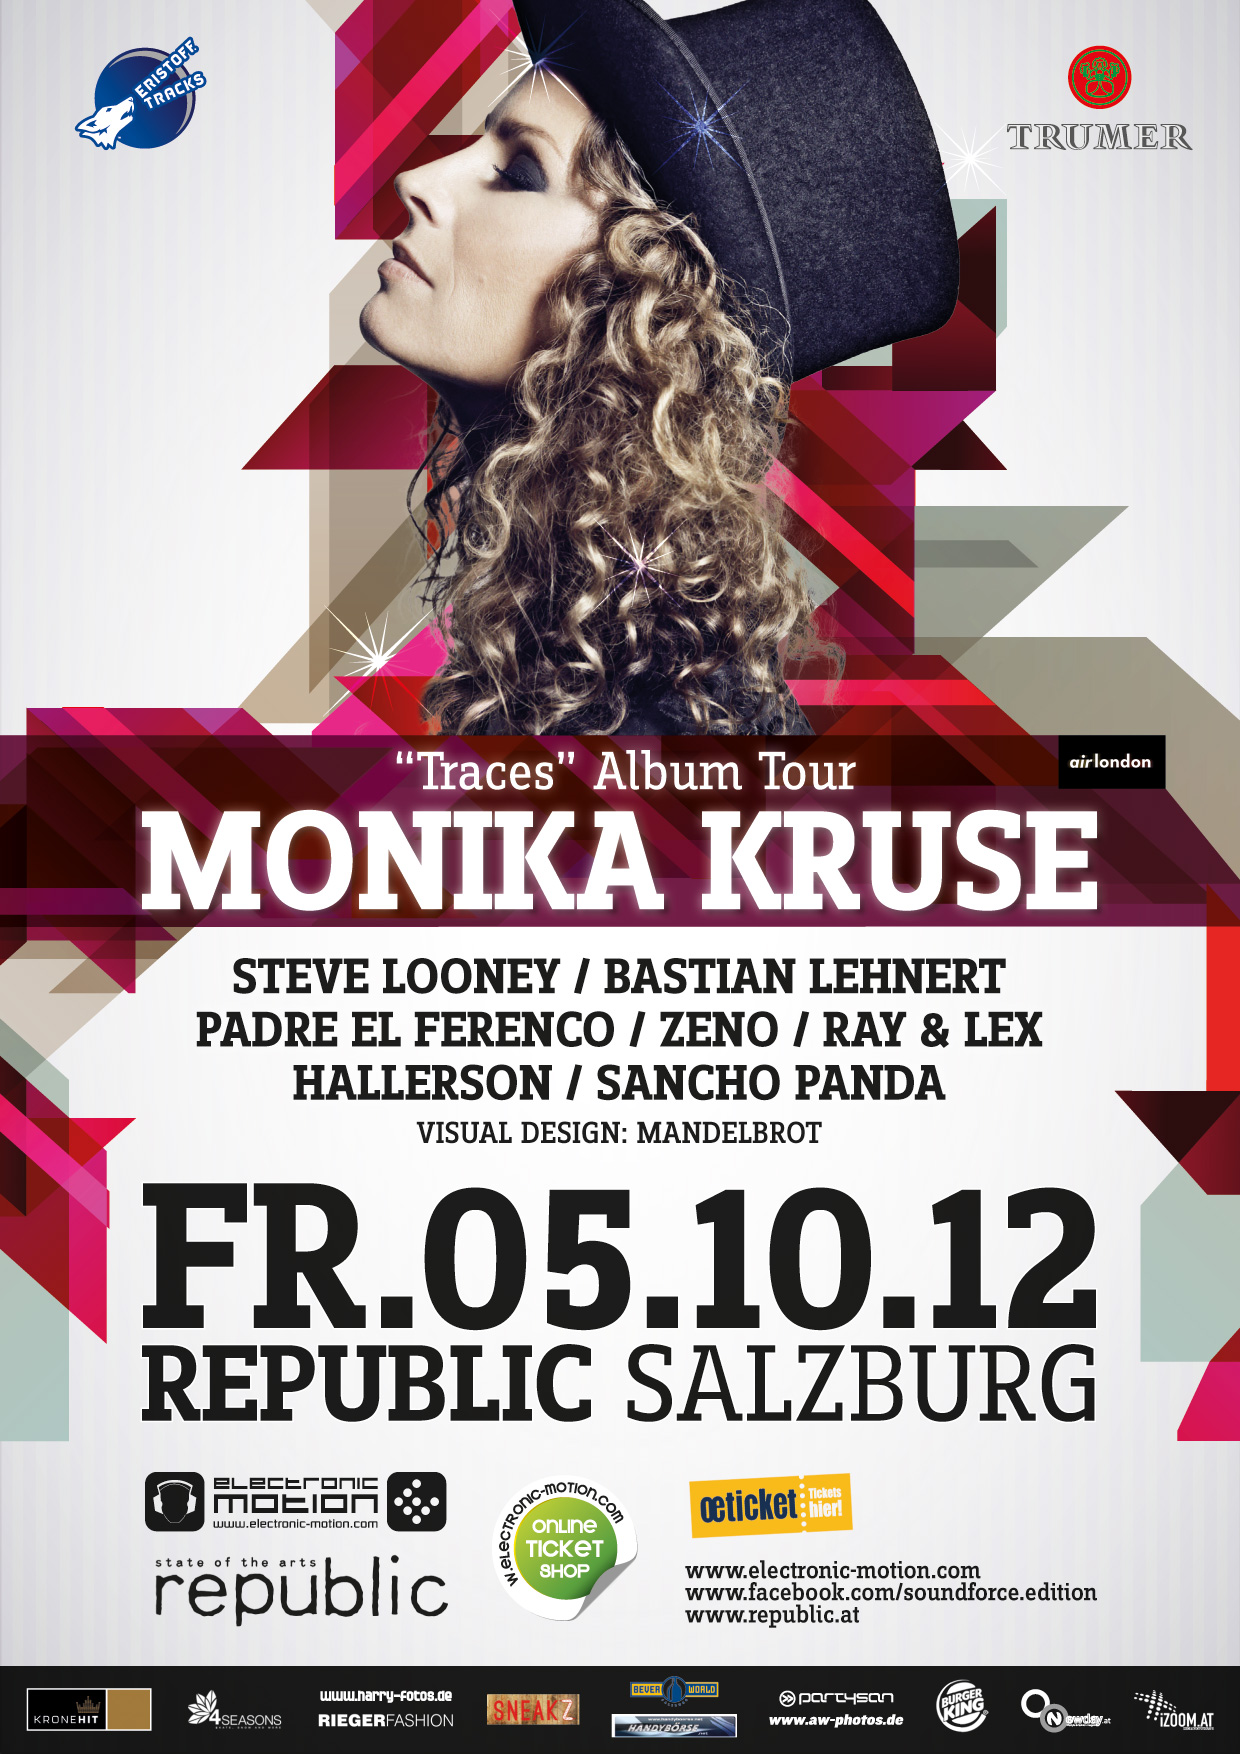 SOUNDFORCE -diamond edition- with Monika Kruse, 05.10.2012 @ Republic Salzburg